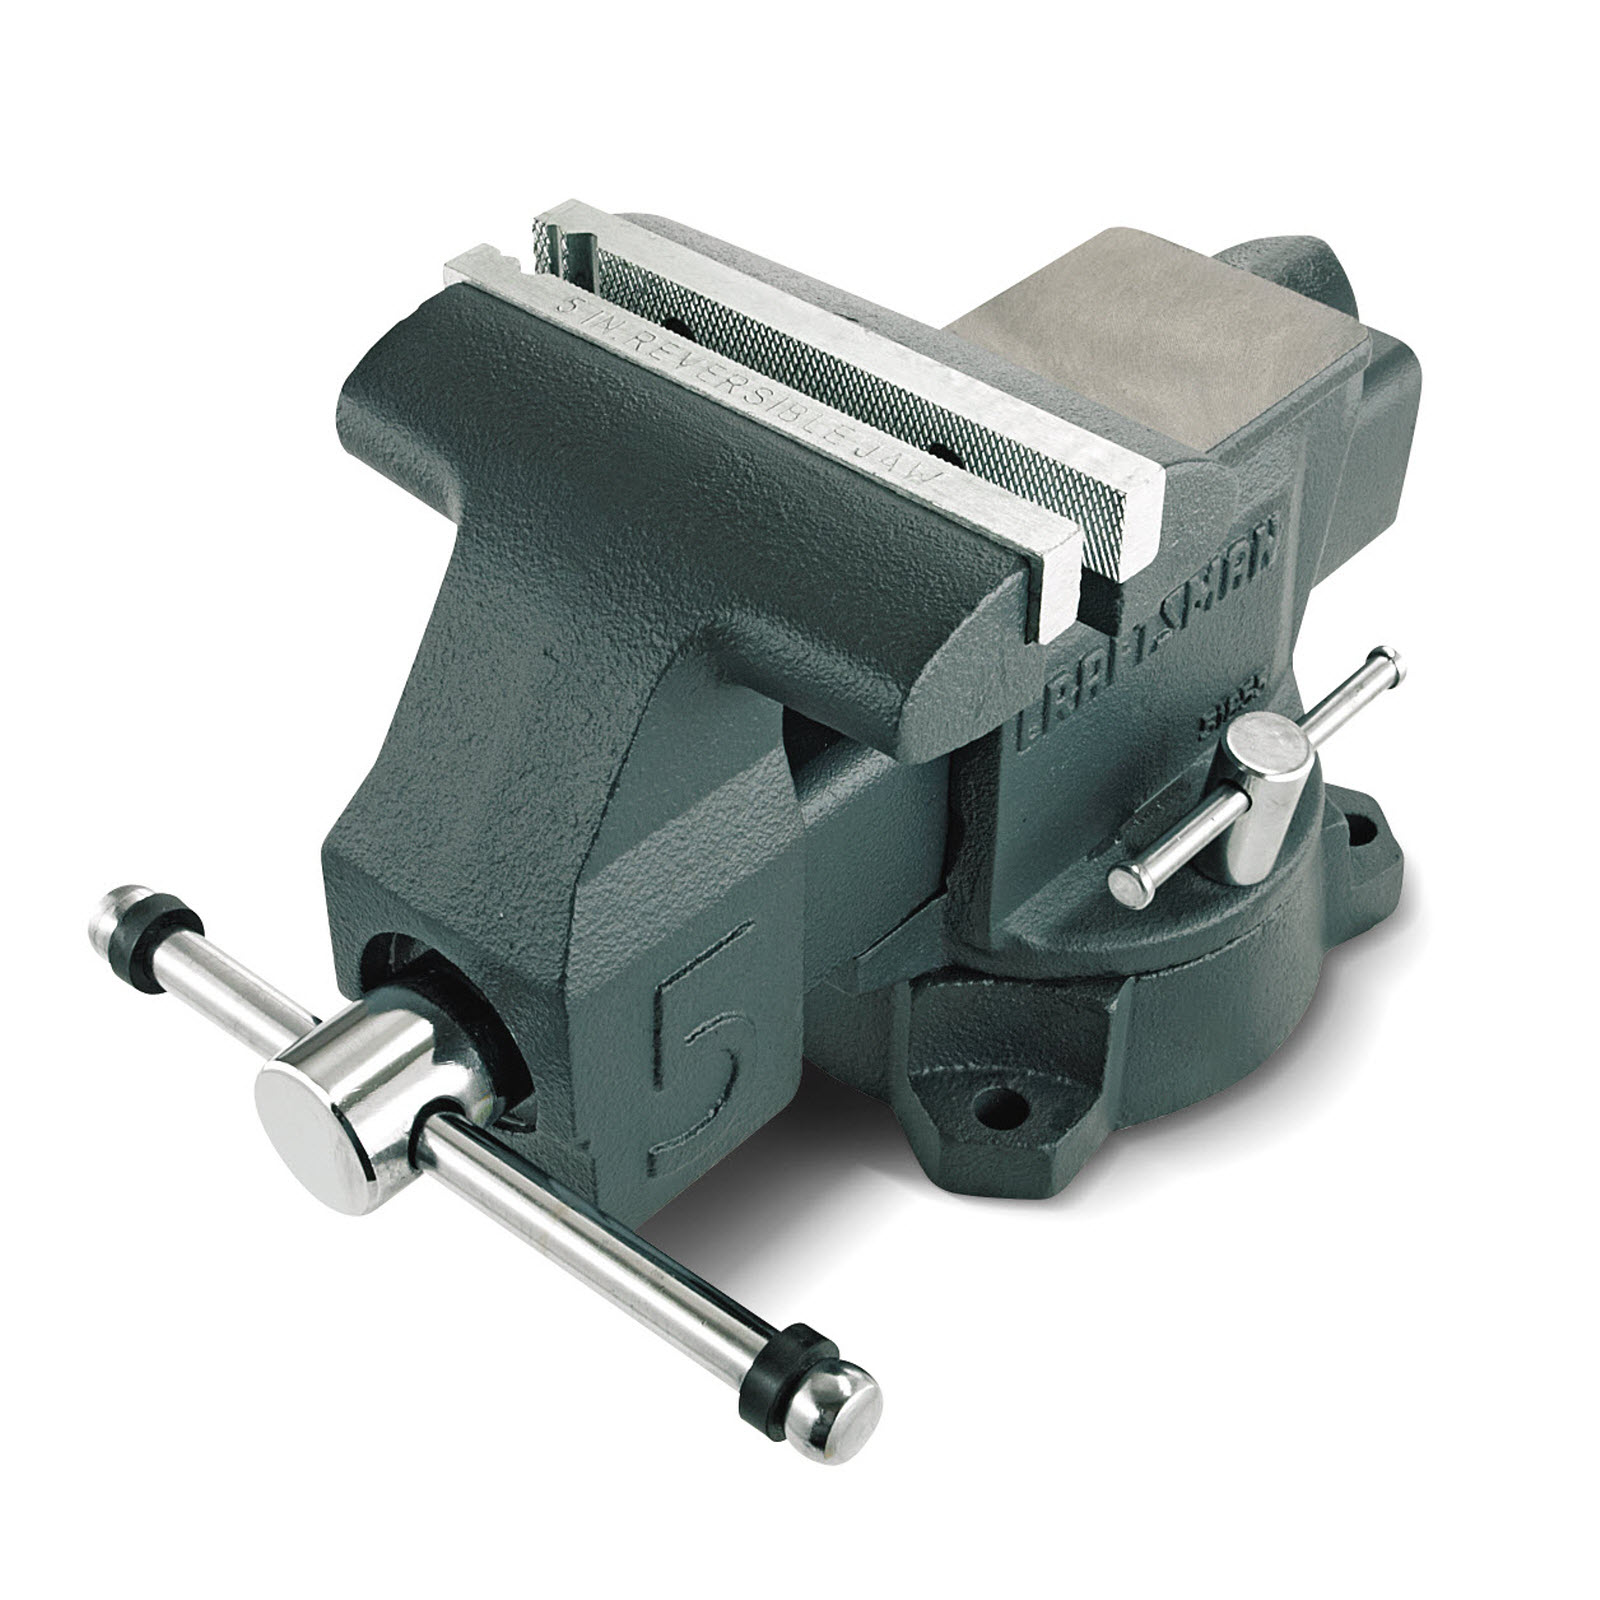 Craftsman Bench Vise 5 in. 180-degree Swivel V-groove Hardy Machined Anvil Top Garage Tool 51855 by